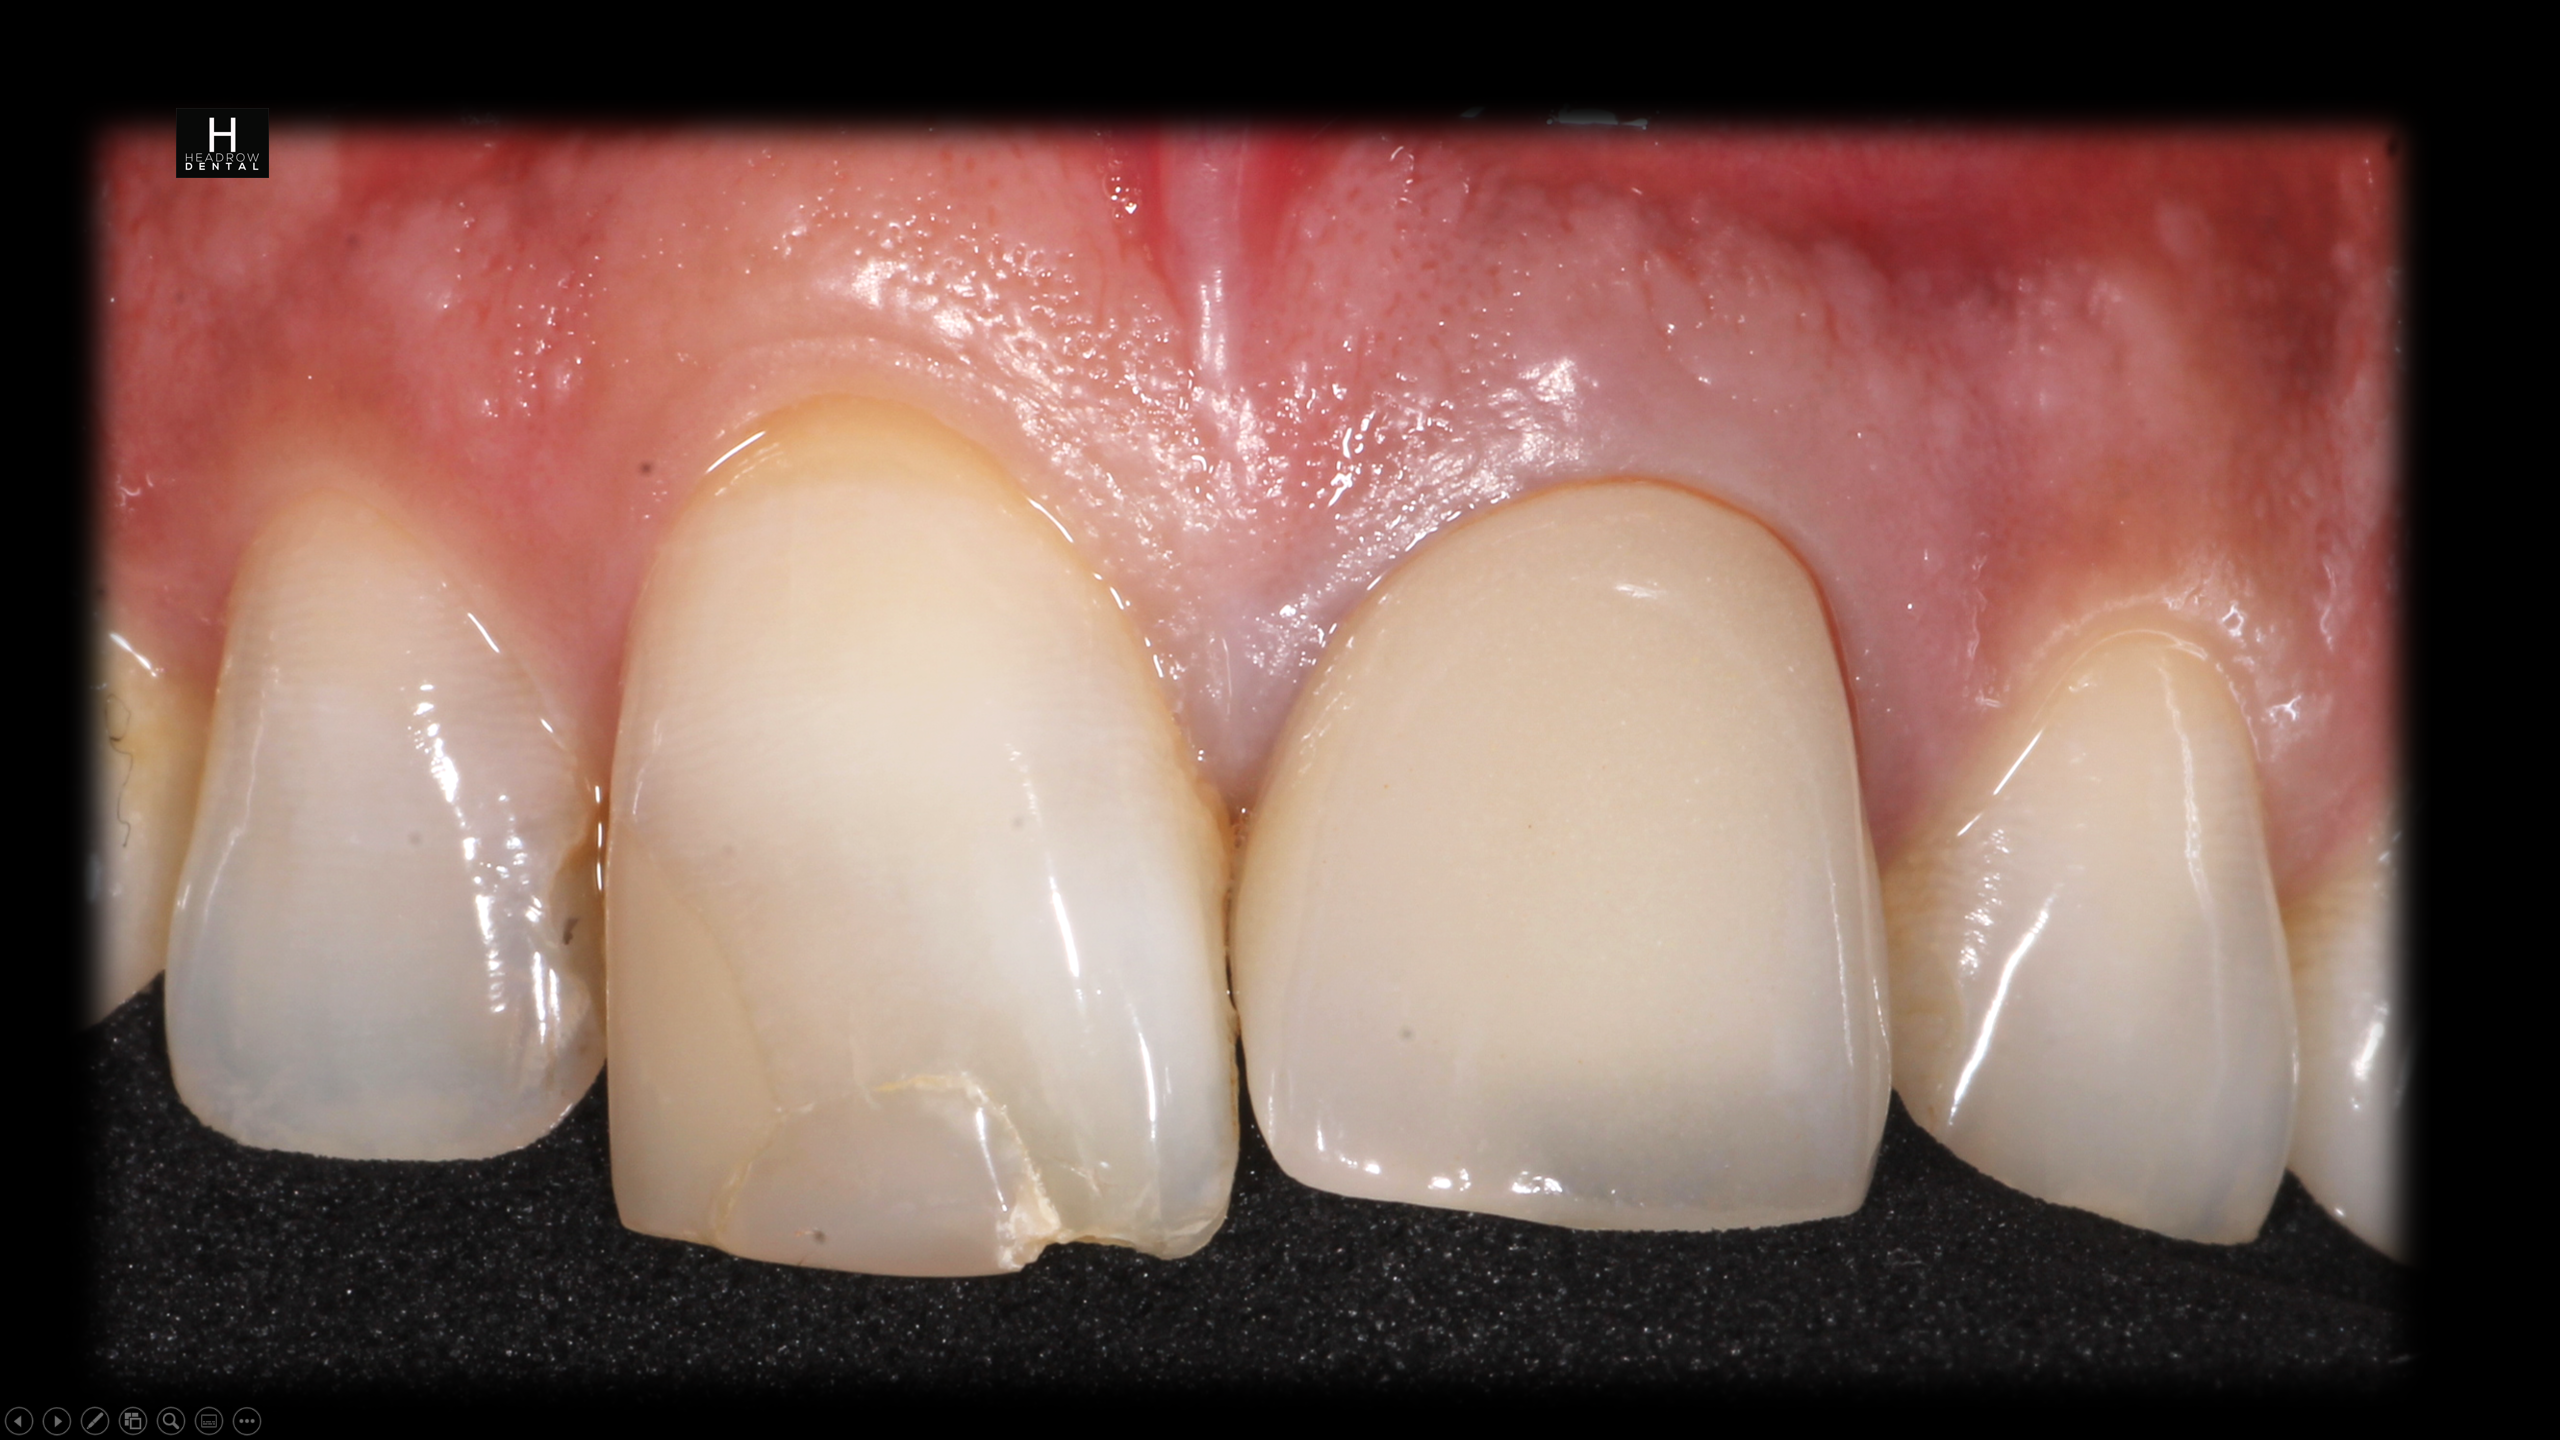 implant case 3 a